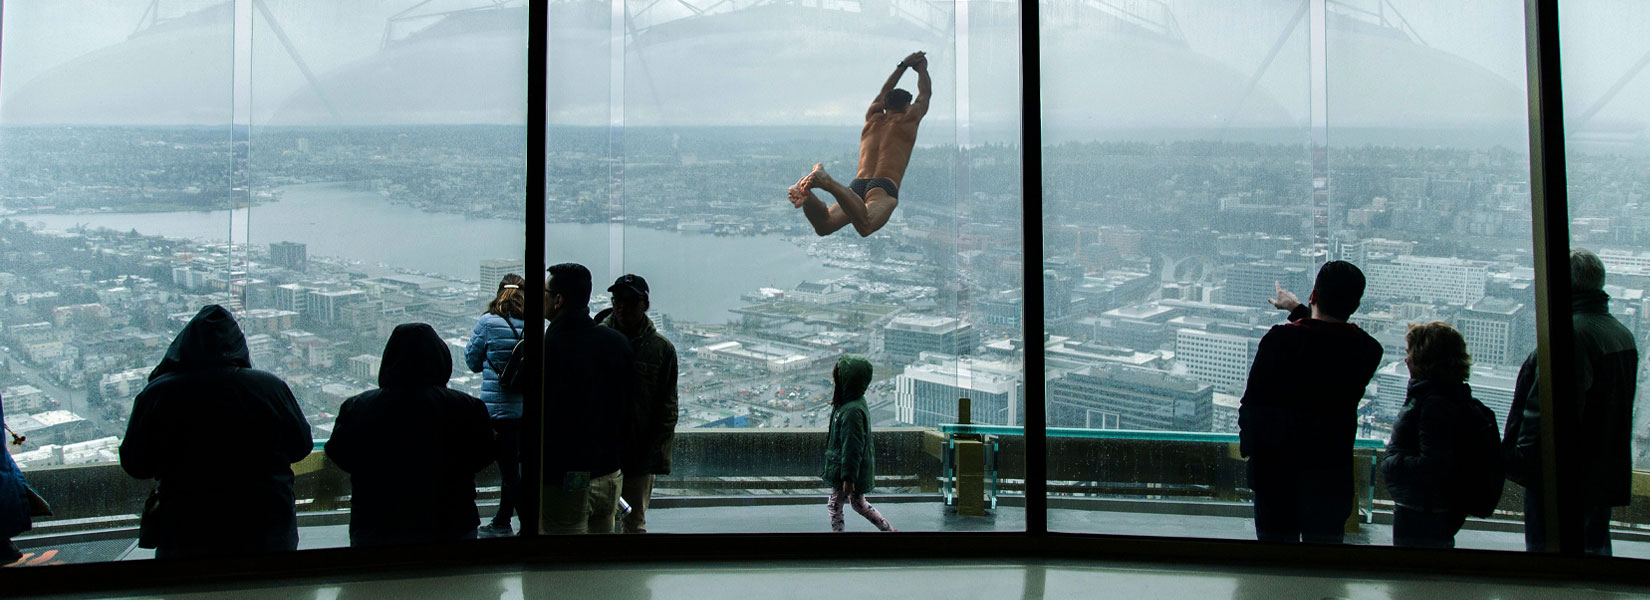 This seemingly impossible photo of a man diving outside the window of a high-rise building is made by Juan Jose Egusquiza